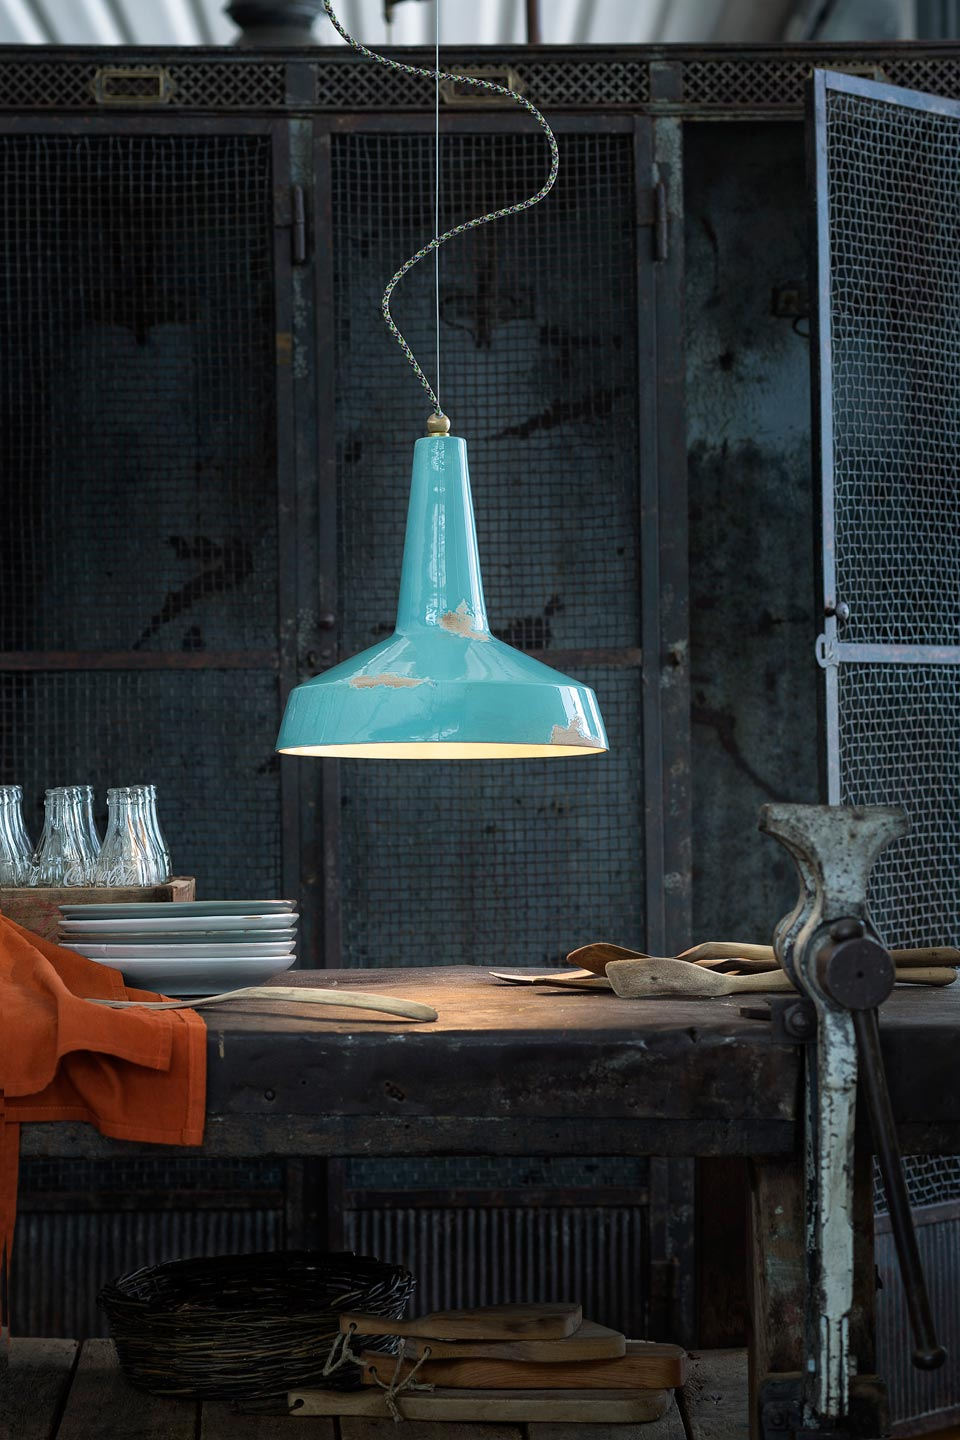 Vintage C1417 industrial style pendant lamp from the 20th century. Ferroluce.